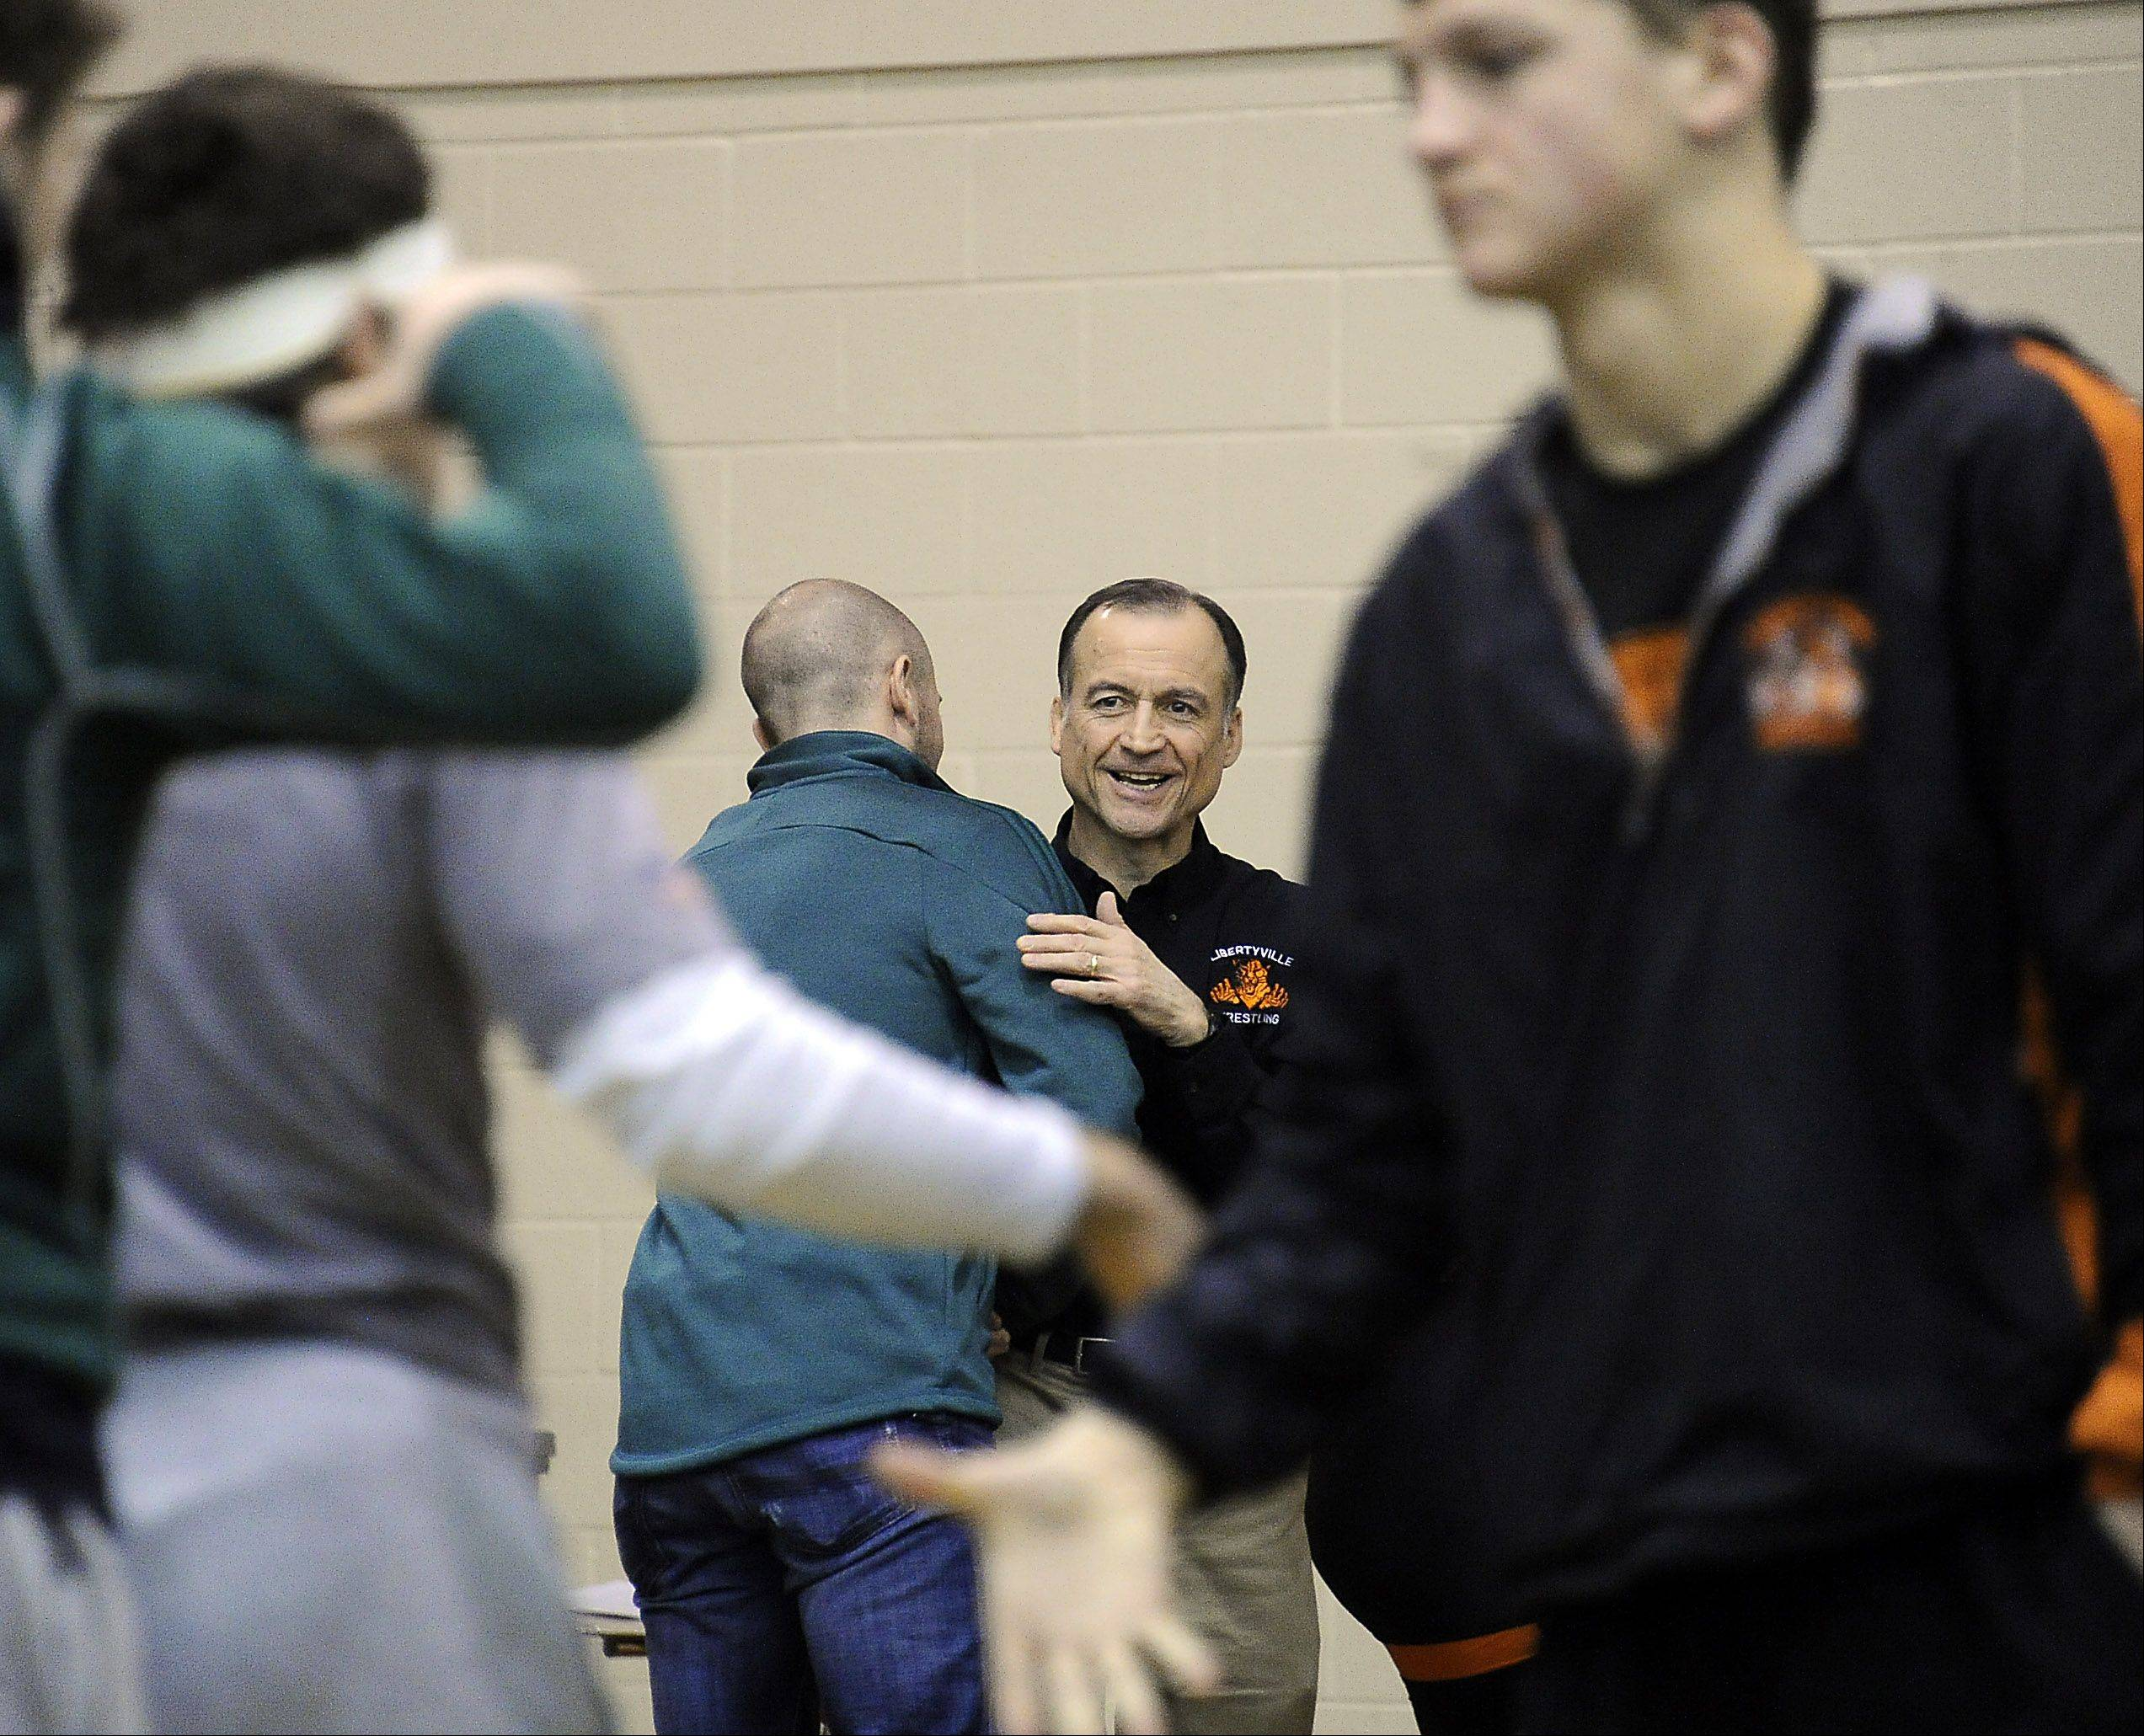 Libertyville wrestling coach Dale Eggert is congratulated by the coaching staff of Crystal Lake South after the Wildcats defeated the Gators in Saturday's quad at Schaumburg. Eggert's team later topped Naperville Central and Schaumburg, giving him 500 career coaching triumphs.